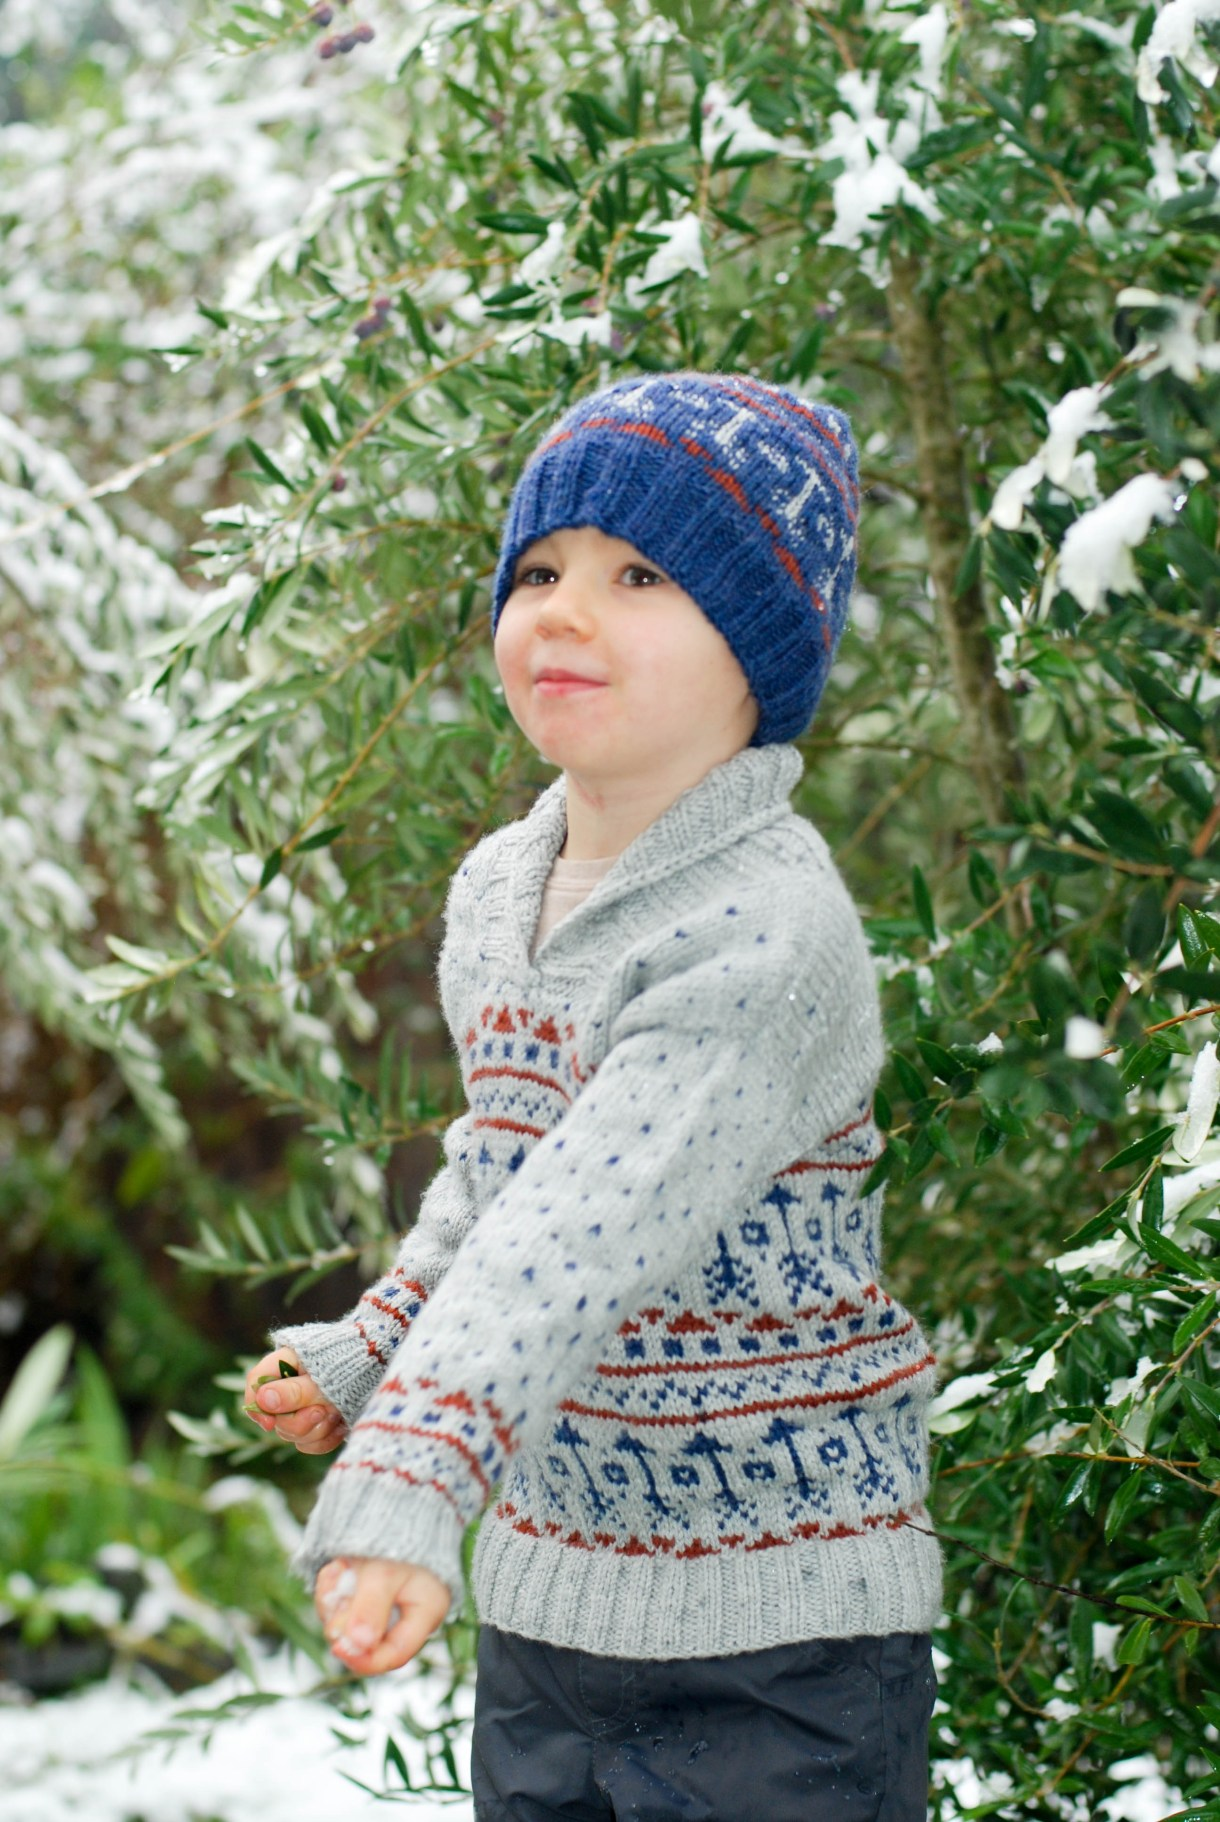 Locksley by Emily Ringelman. Knit by Andrea @ This Knitted Life in Swish Worsted DK (Knit Picks).